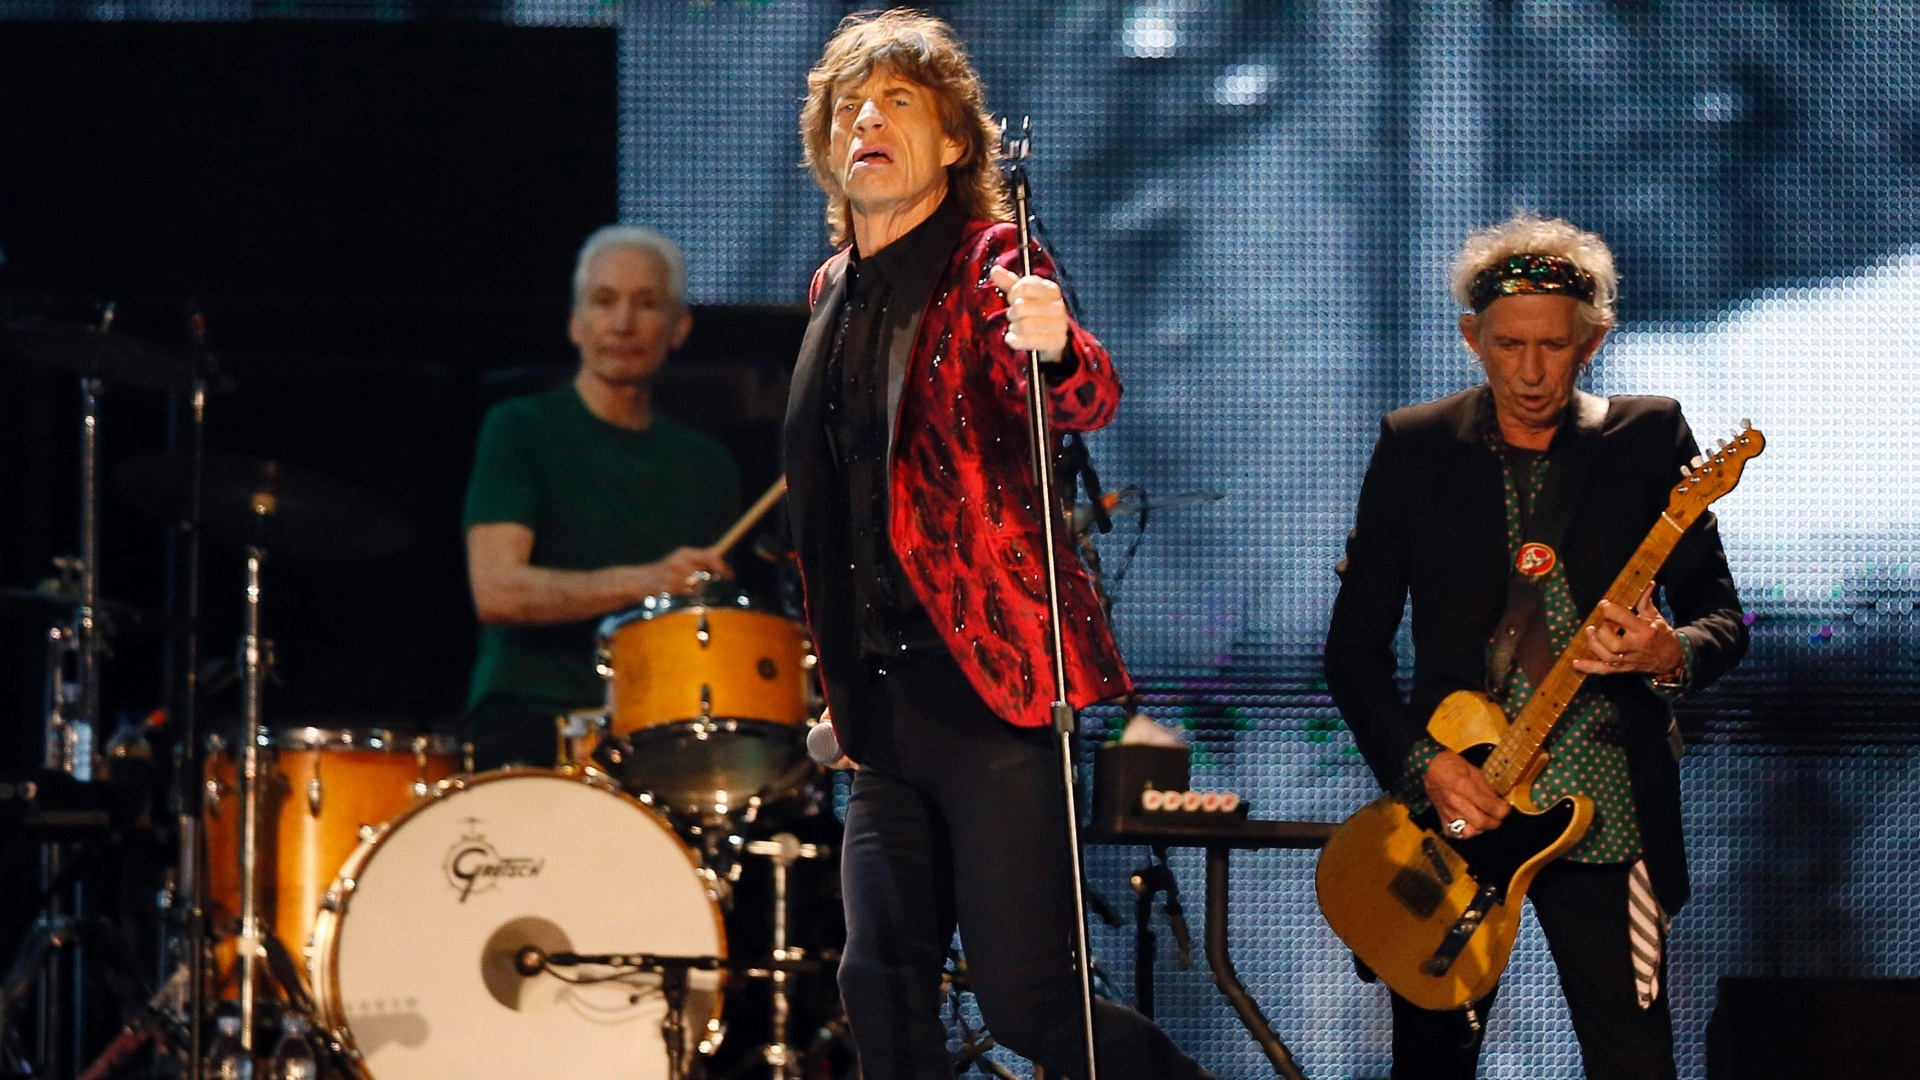 21.fev.2014 - Mick Jagger, Charlie Watts e Keith Richards, do Rolling Stones, fazem show em Abu Dhabi